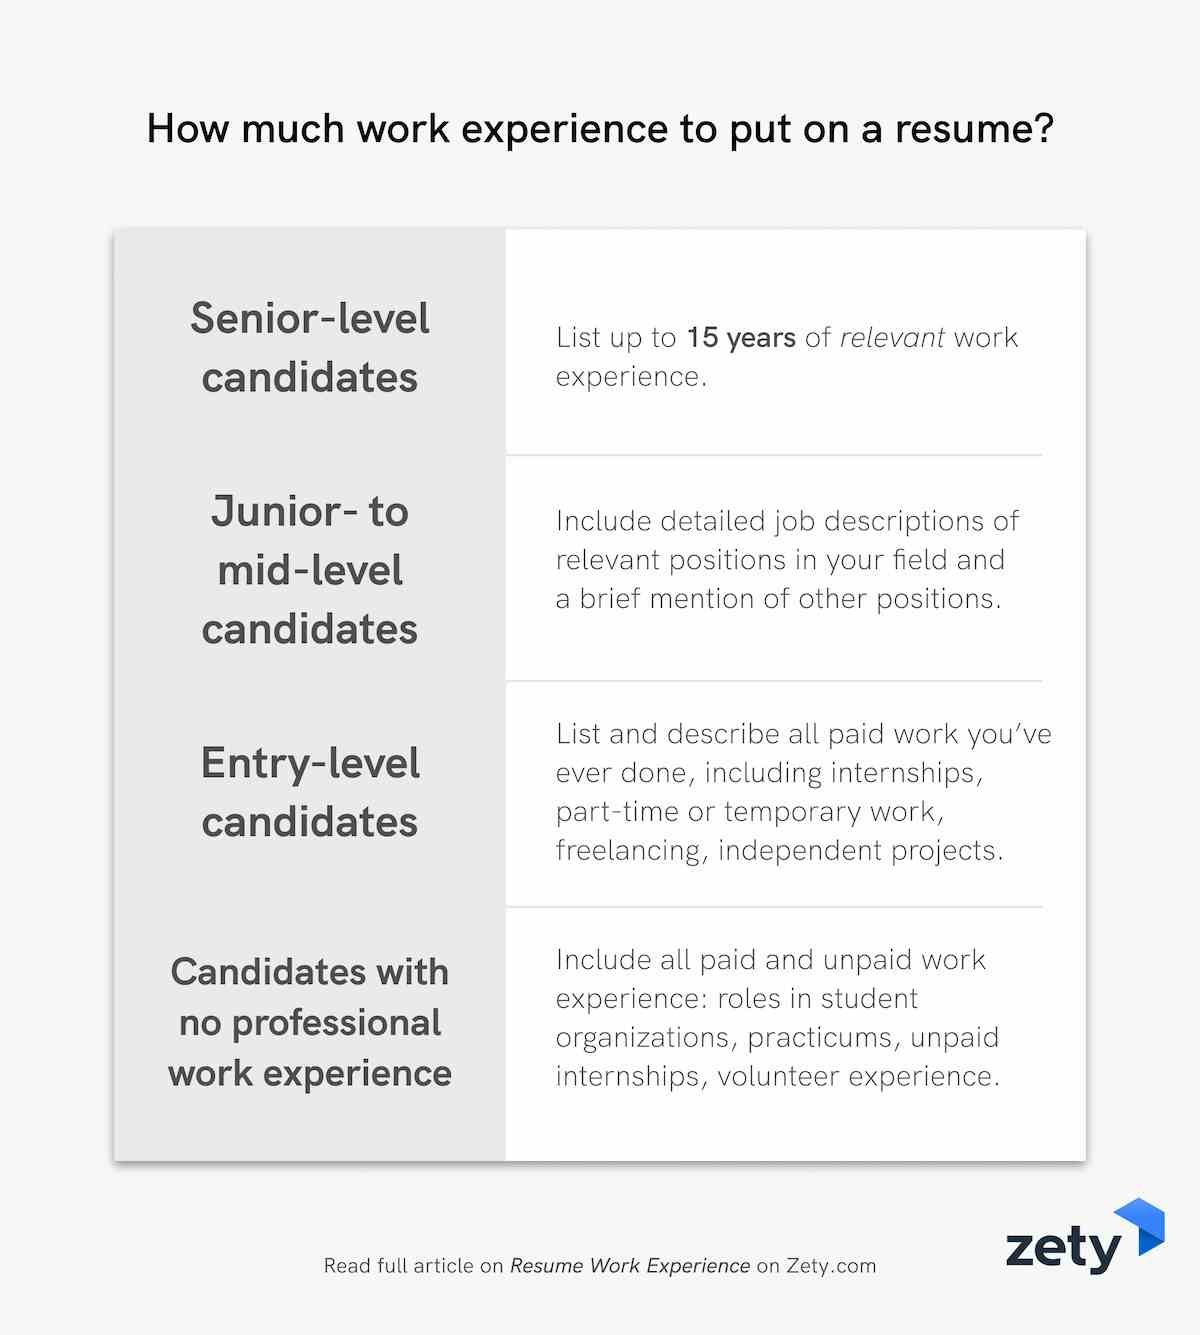 How much work experience to put on a resume